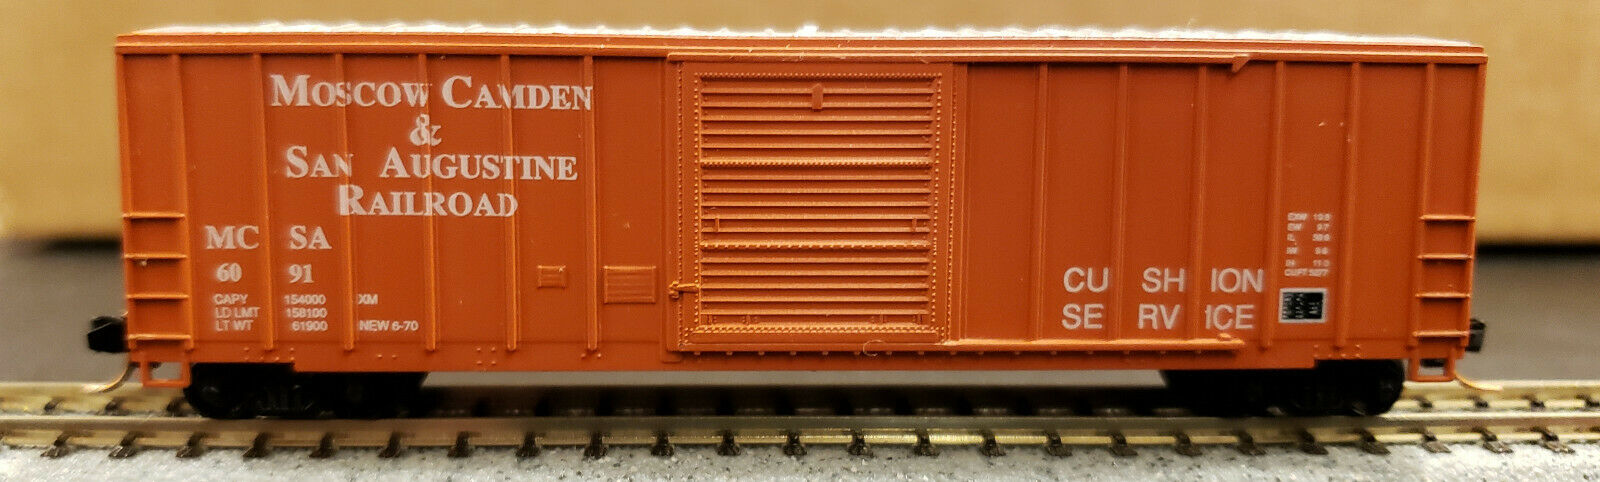 N Scale - Roundhouse - 8858 - Boxcar, 50 Foot, FMC, 5347 - Moscow Camden & San Augustine - 6091